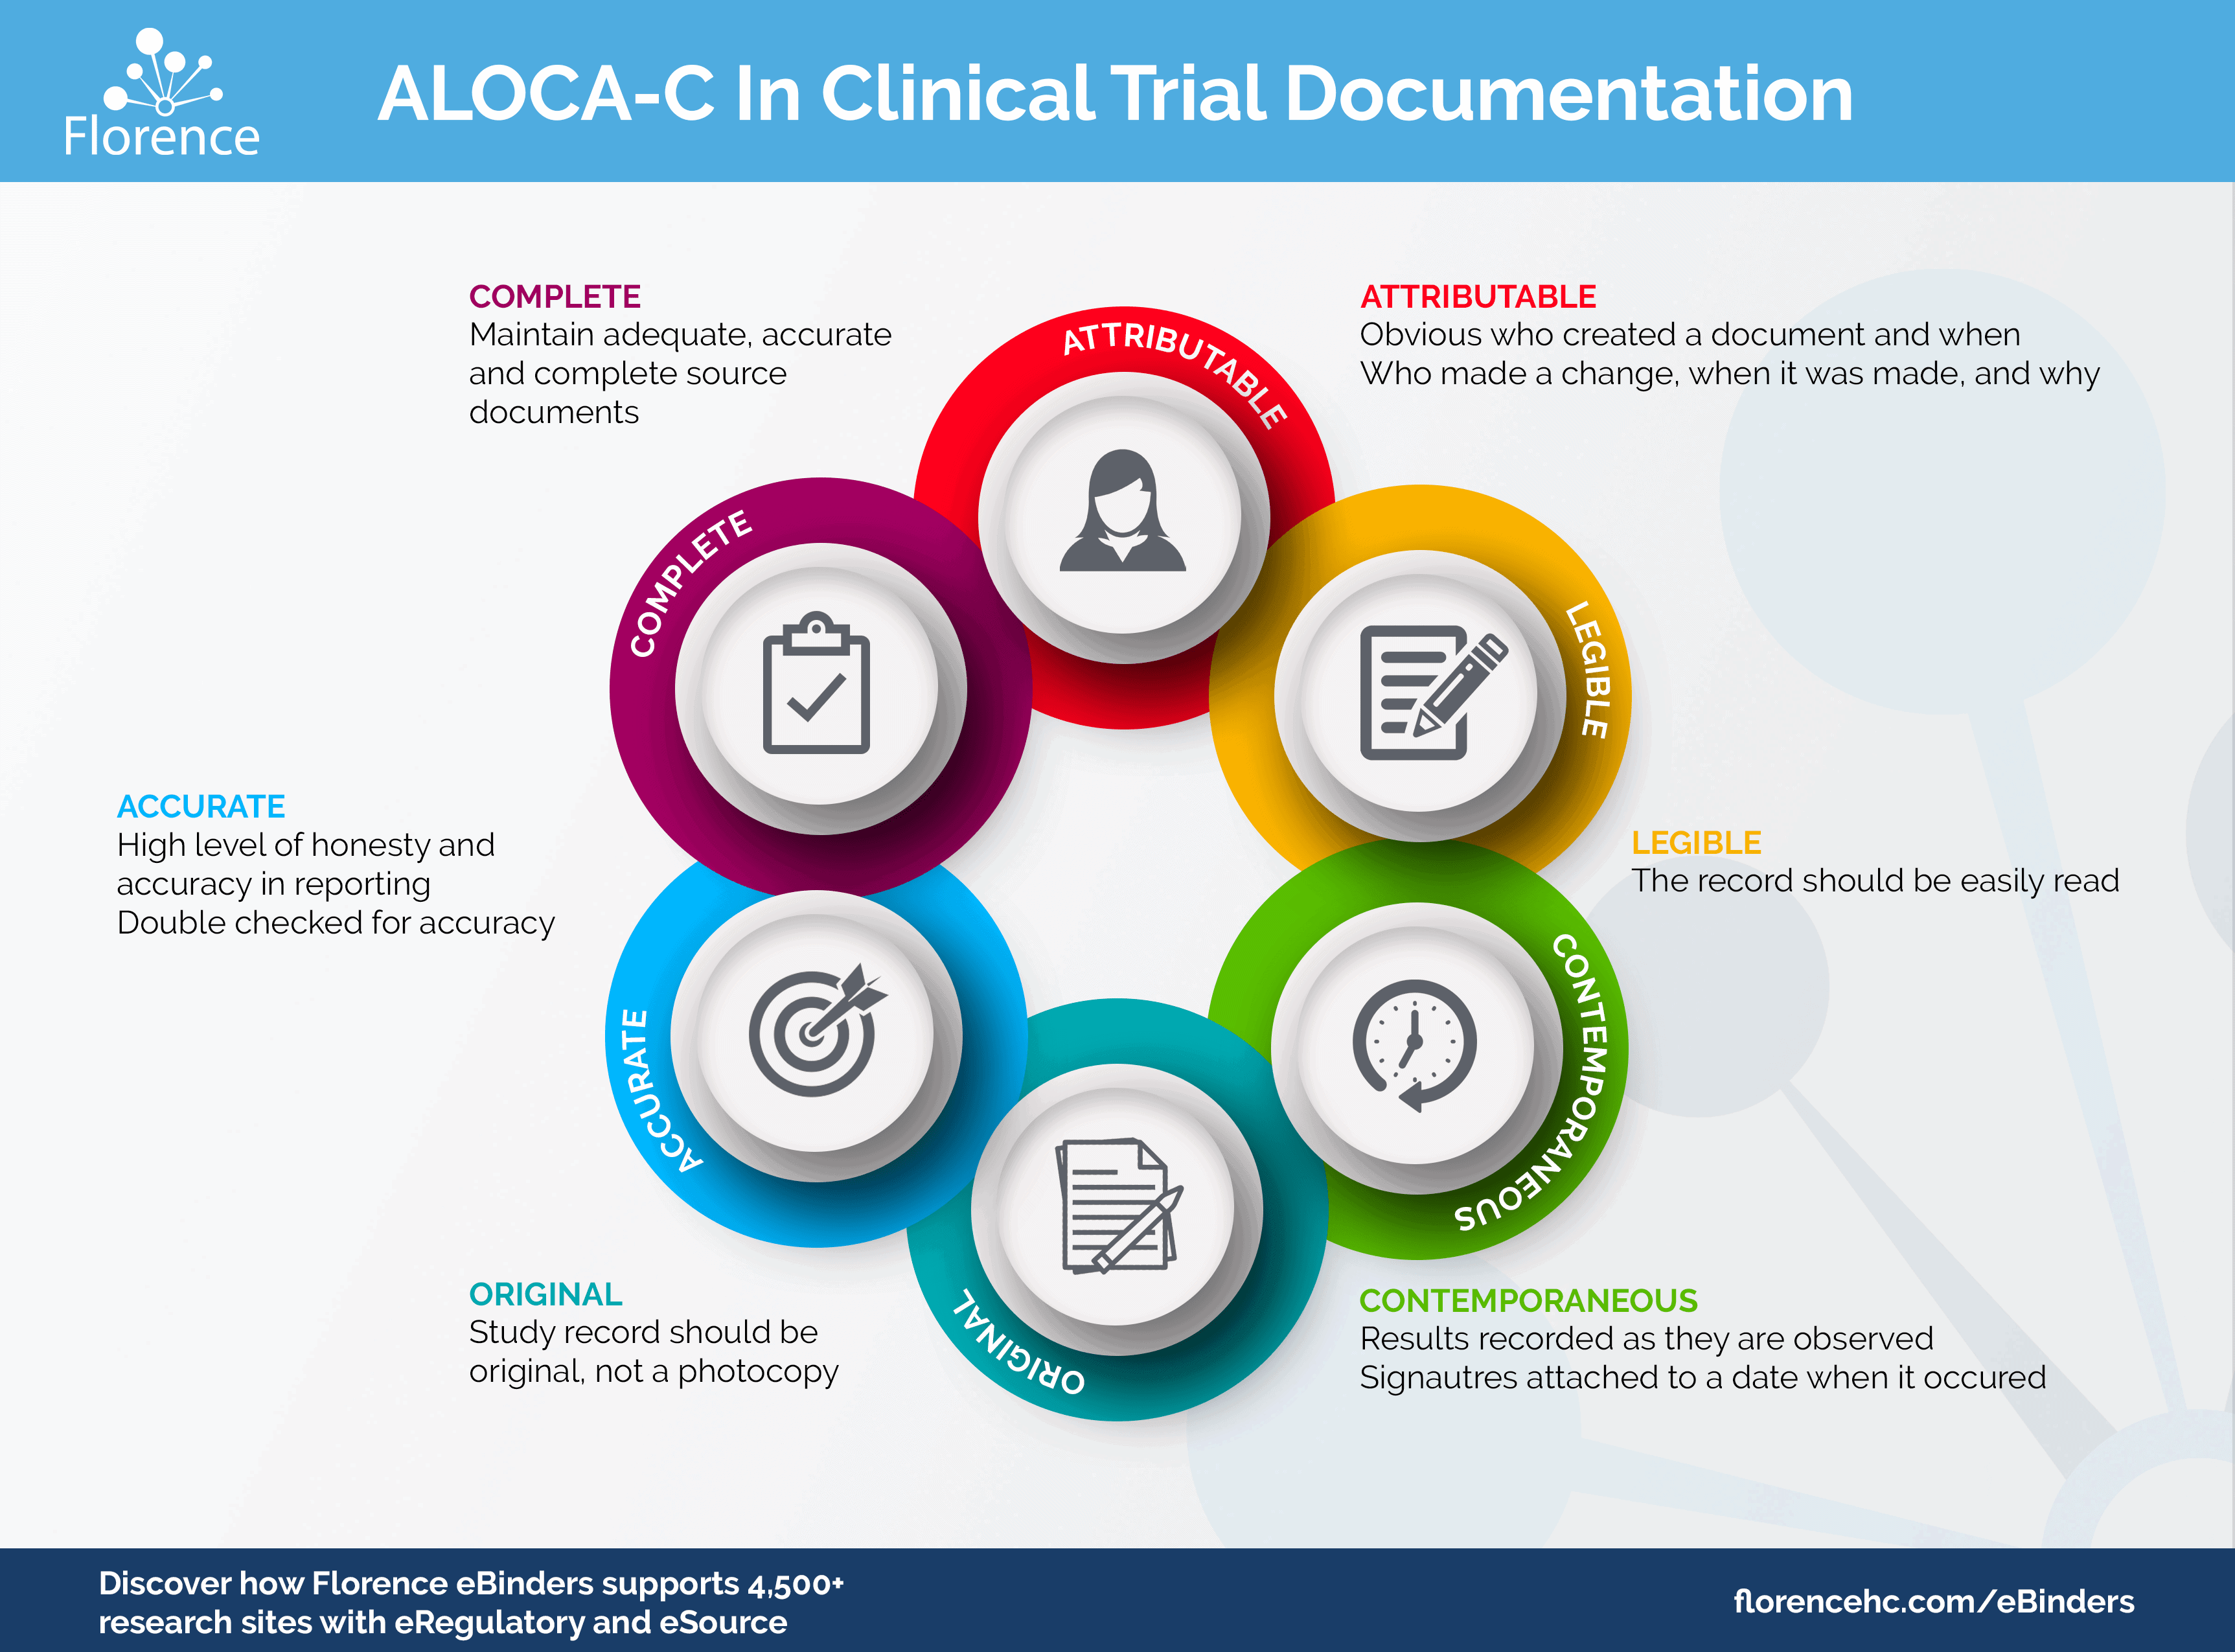 ALOCA-C in Clinical Trial Electronic Document Management